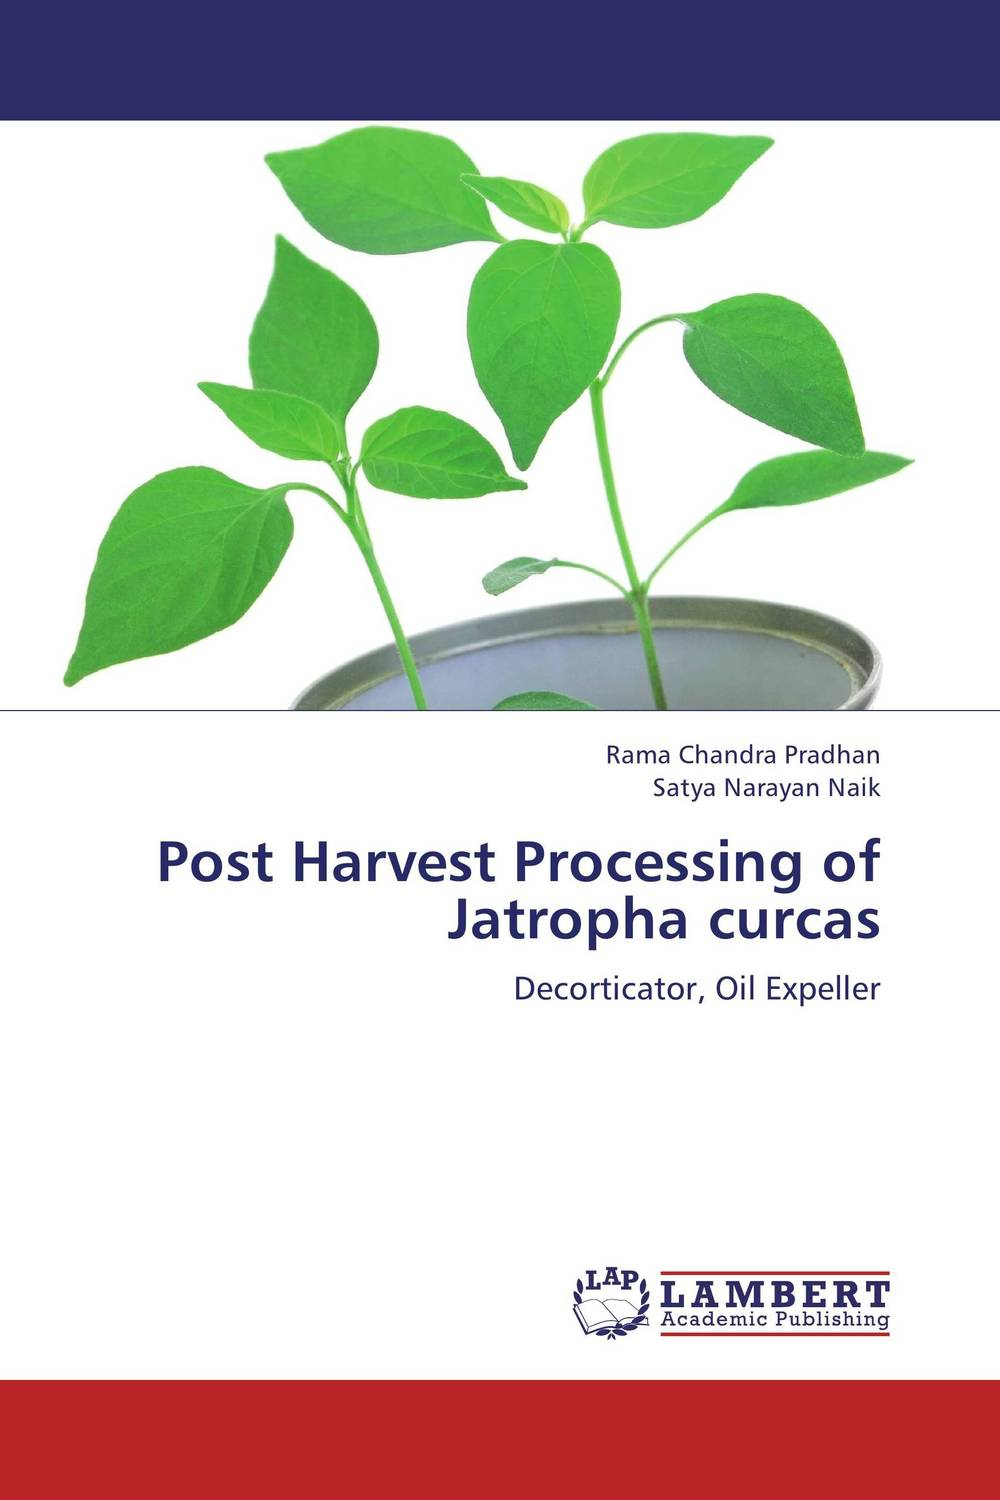 Post Harvest Processing of Jatropha curcas processing properties